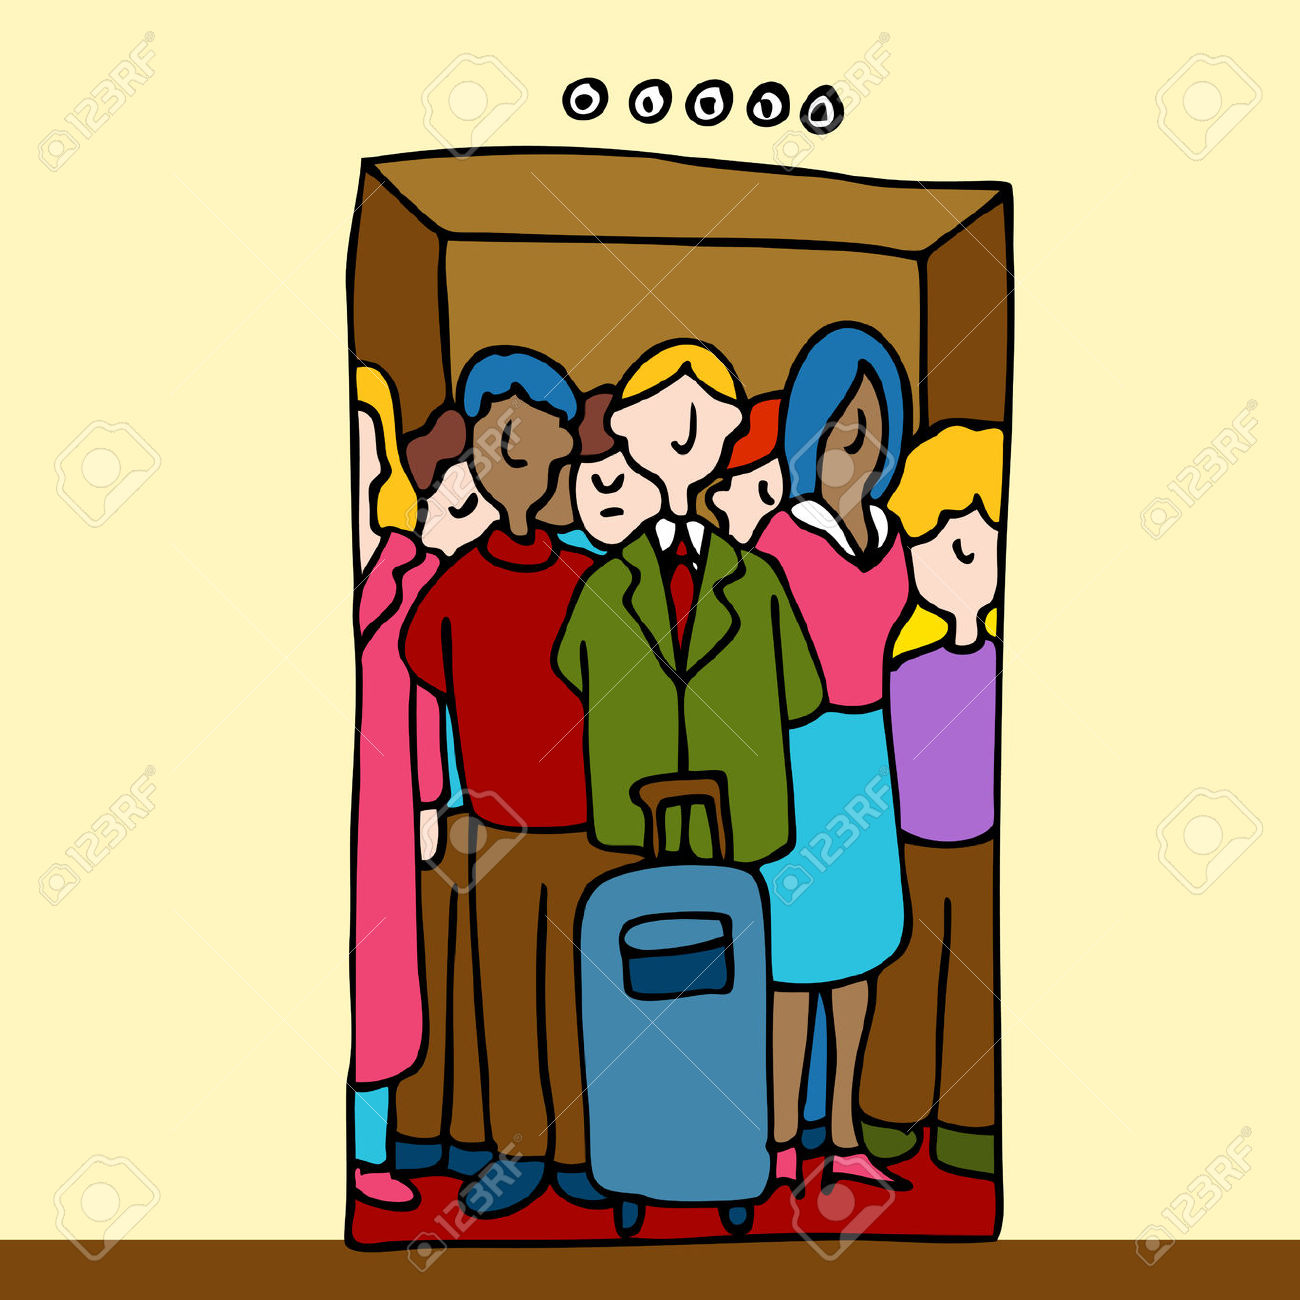 Crowded room clipart.